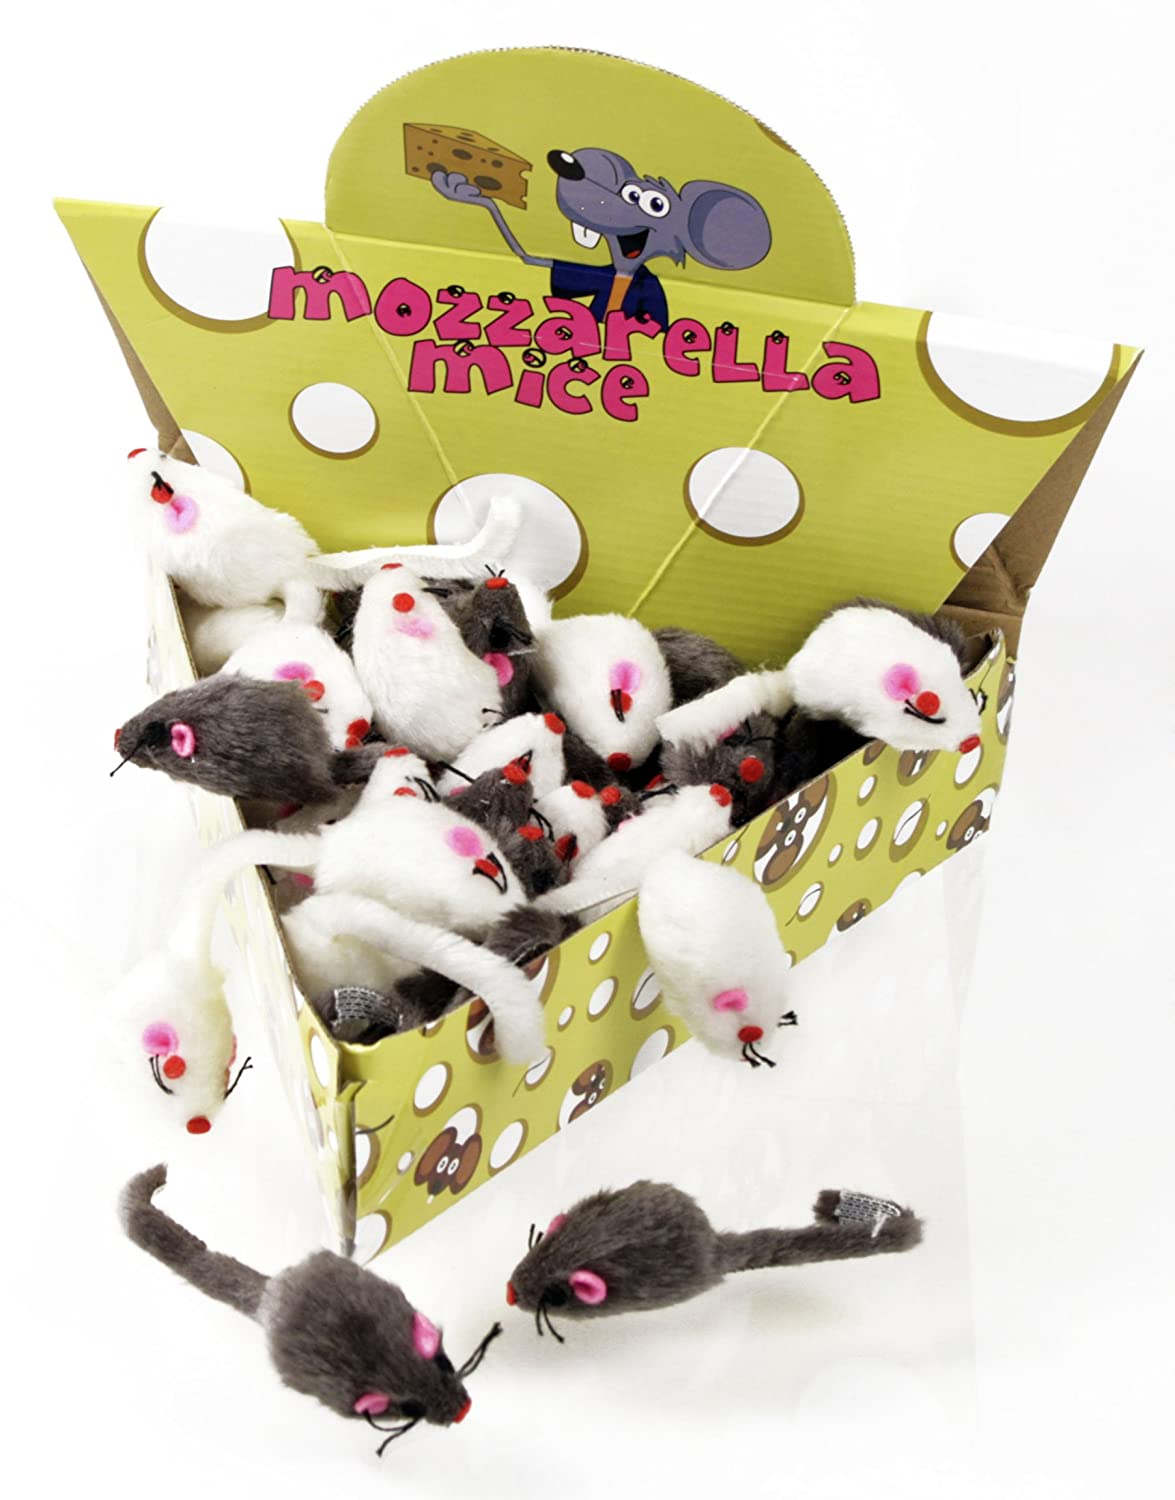 MOZZARELLA Plush Mice – 48 pc. Cheese Wedge Pack $14.99